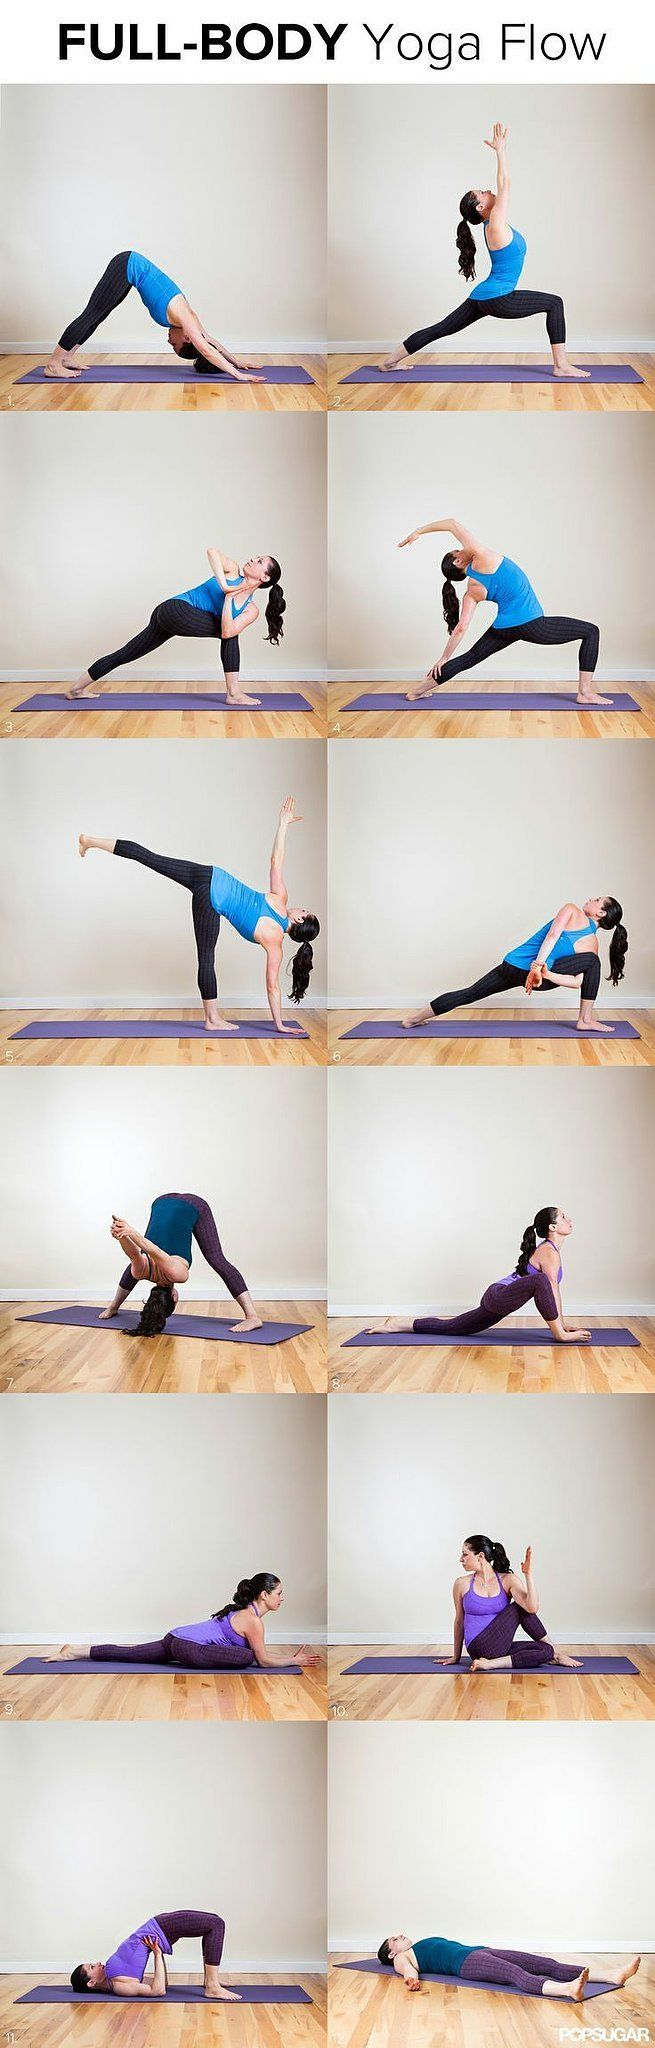 """Day 12 """"Get Fit"""" Resolution: Long and Lean Full-Body Yoga Flow"""